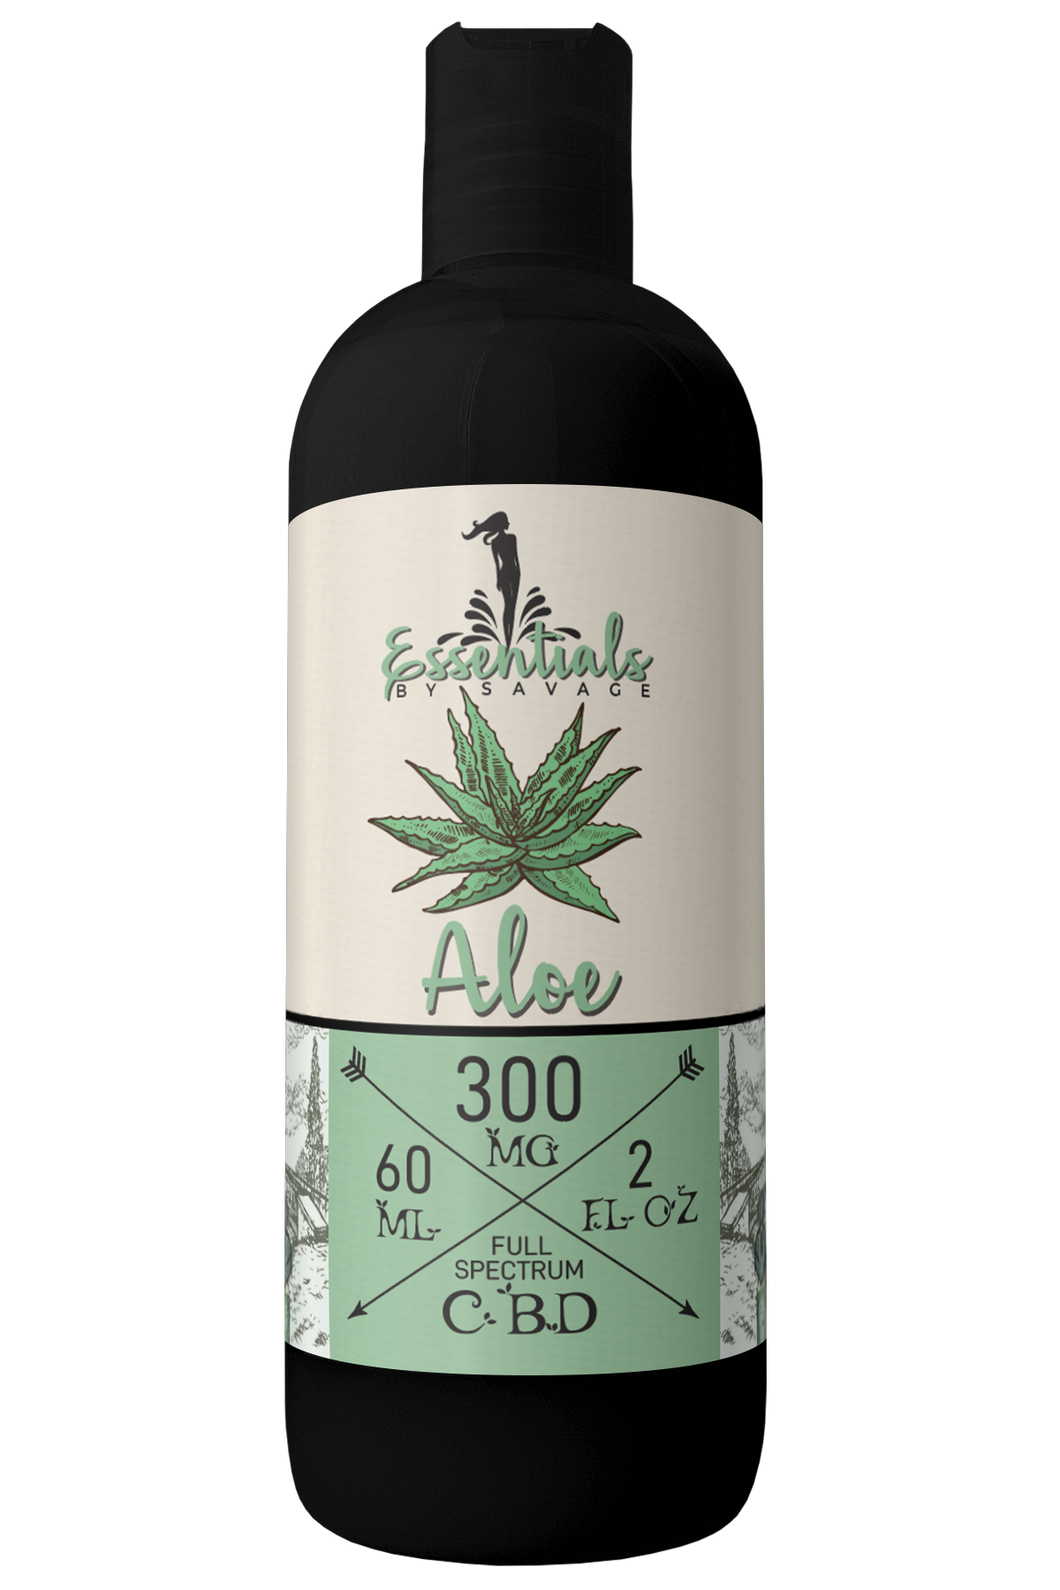 Aloe vera with CBD oil mixed in